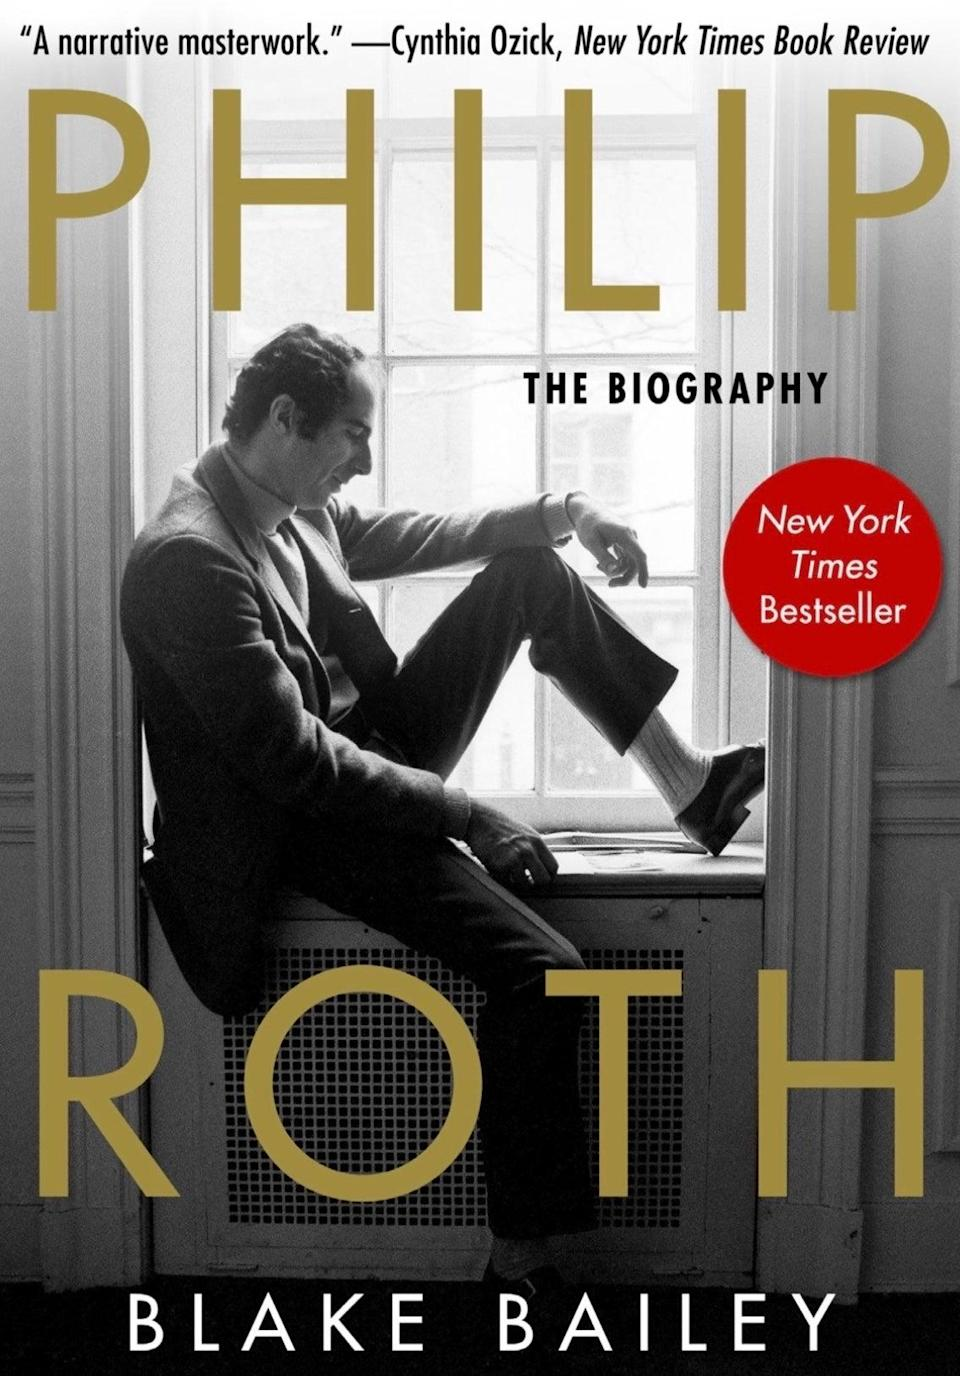 Books-Philip Roth Biography (ASSOCIATED PRESS)